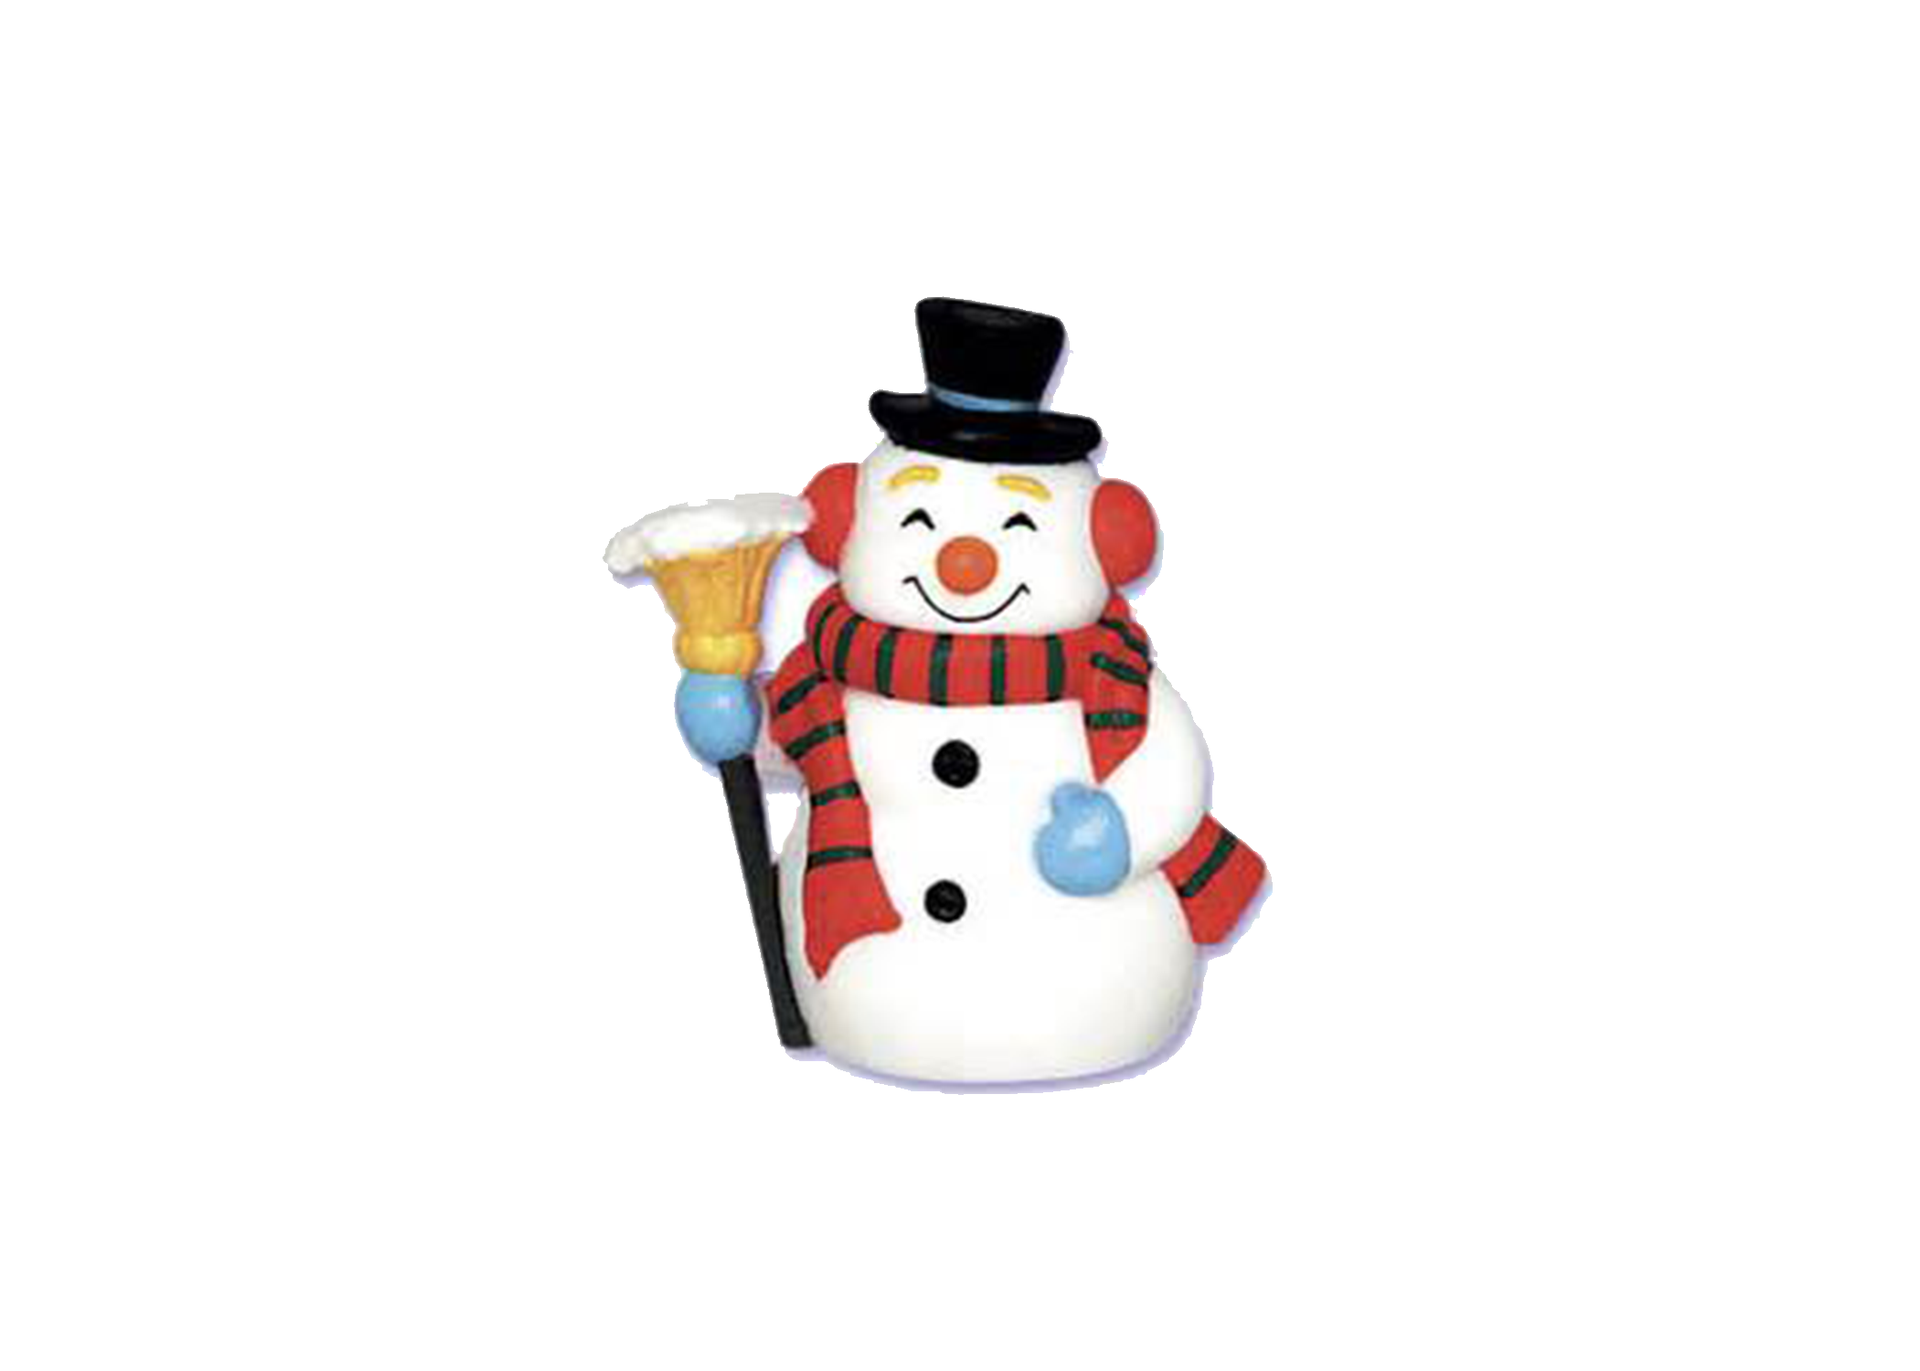 Snowman with top hat and a broom